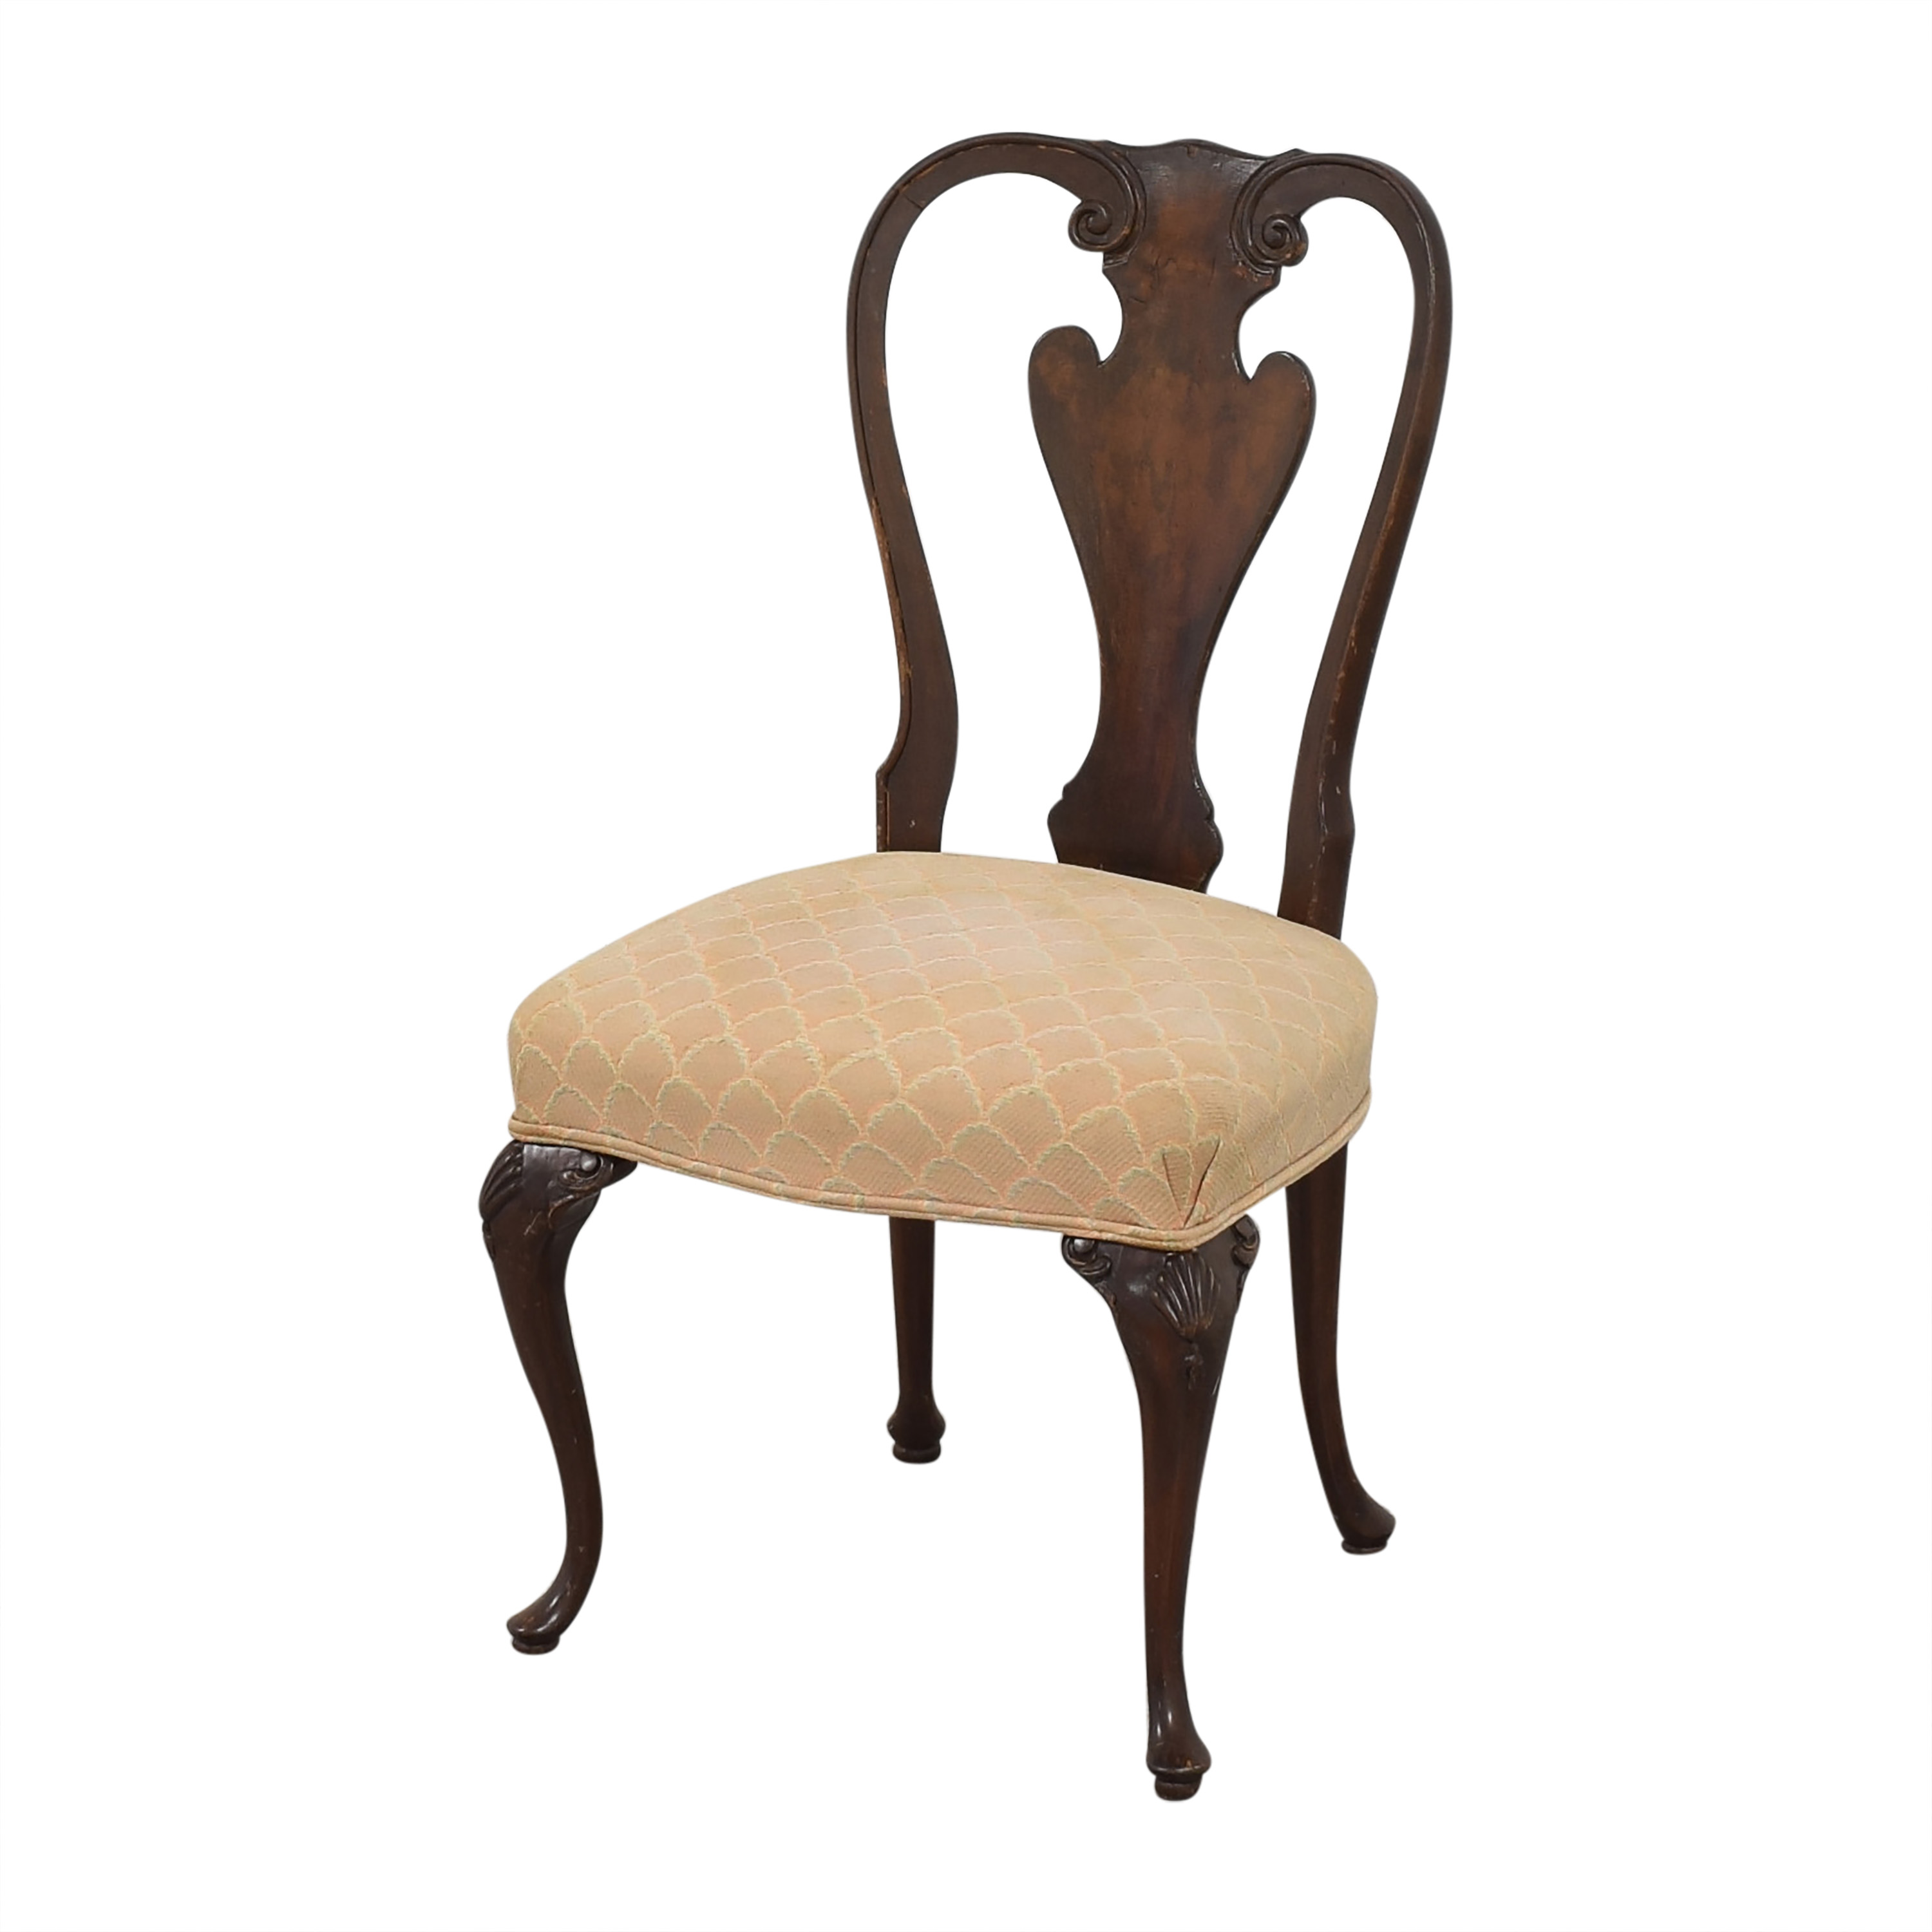 buy Drexel Drexel Upholstered Dining Chairs online